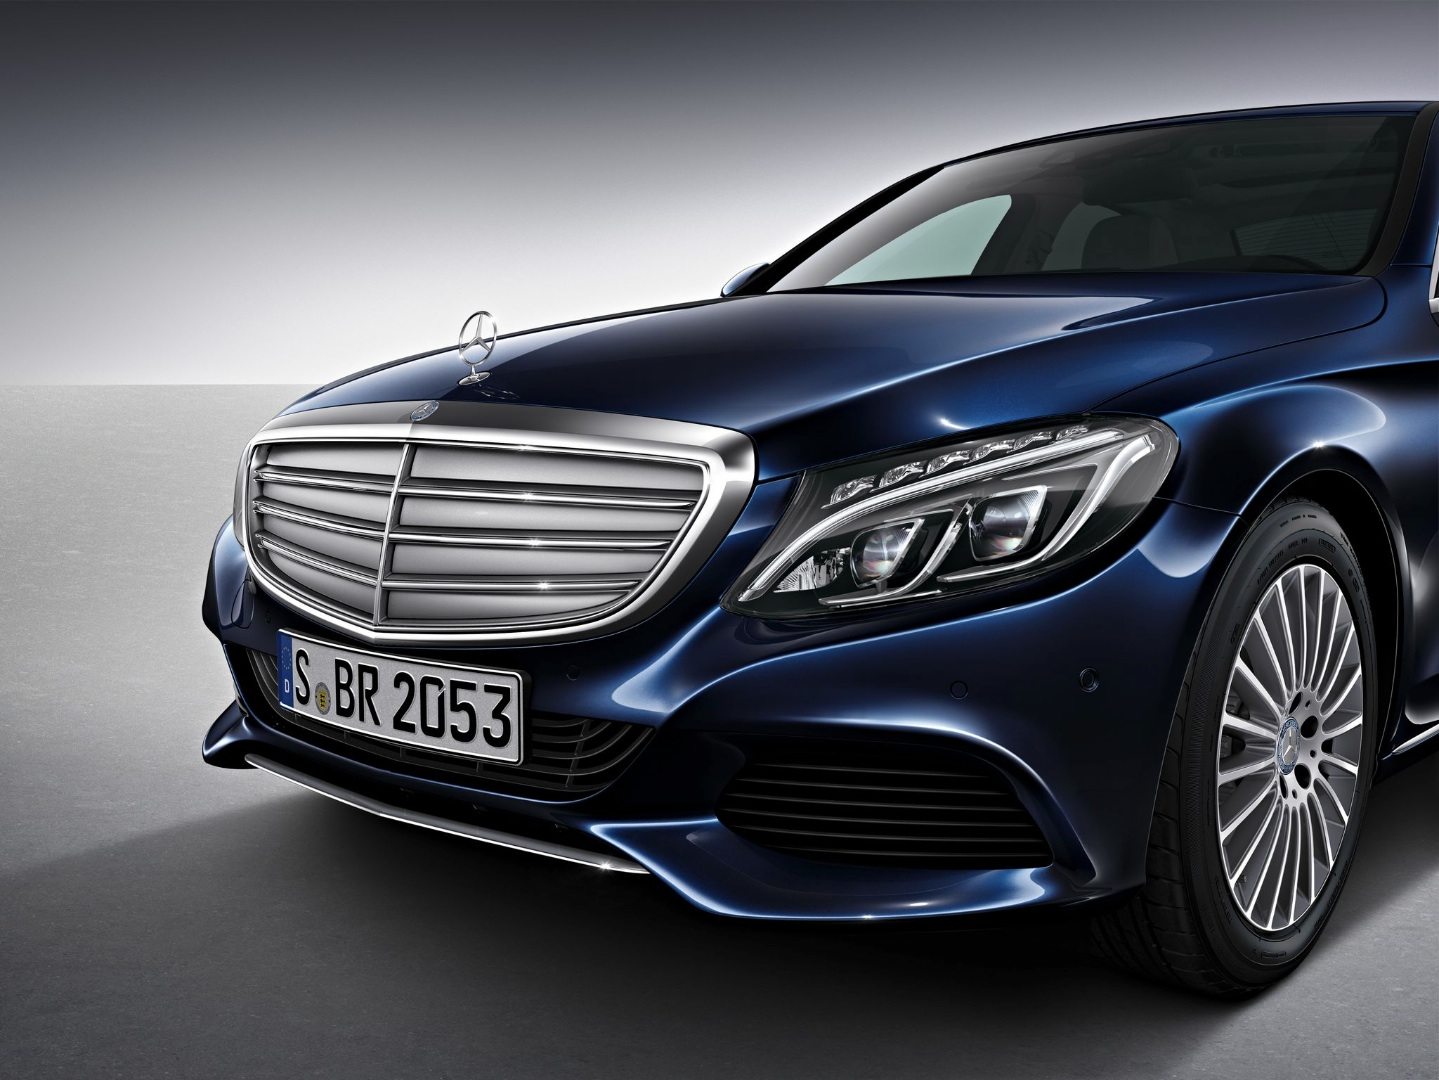 2015 mercedes benz c class w205 with airpanel looks like. Black Bedroom Furniture Sets. Home Design Ideas